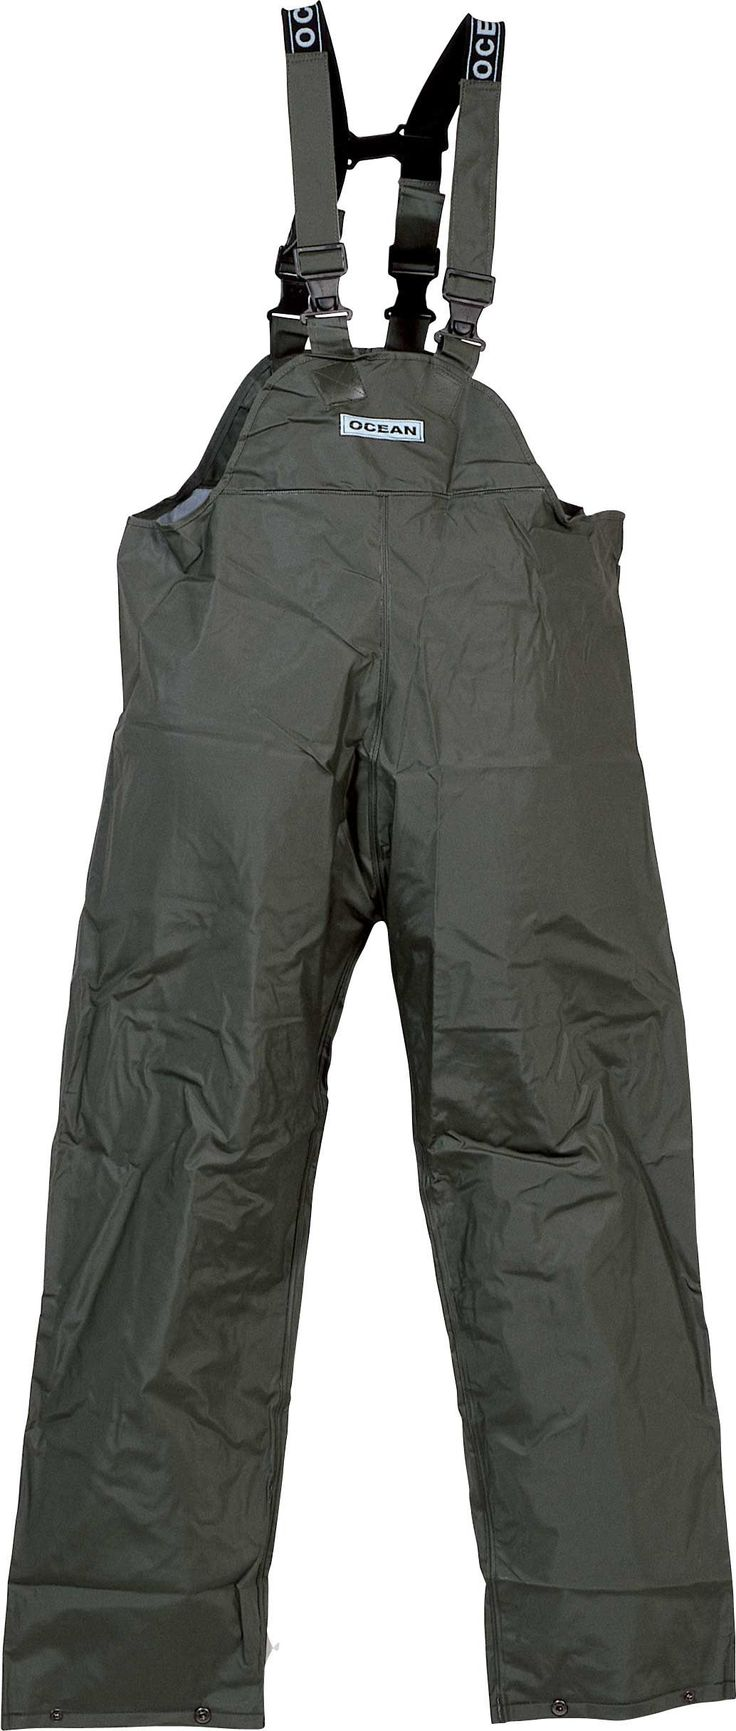 Ocean fishing Clothing, Jackets, Trousers, Bib n Braces & more .... Breathable & waterproof ,dungarees in soft and pliable material with high durability and cold resistance,fishing clothing,fishing clothing,sport fishing clothing,ice fishing clothing,hunting & fishing clothing,fly fishing clothing,fishing clothing with sun protection,waterproof fishing clothing,sea fishing clothing,fishing clothing uk,carp fishing clothing,womens fly fishing clothing,womens fishing clothing,winter...